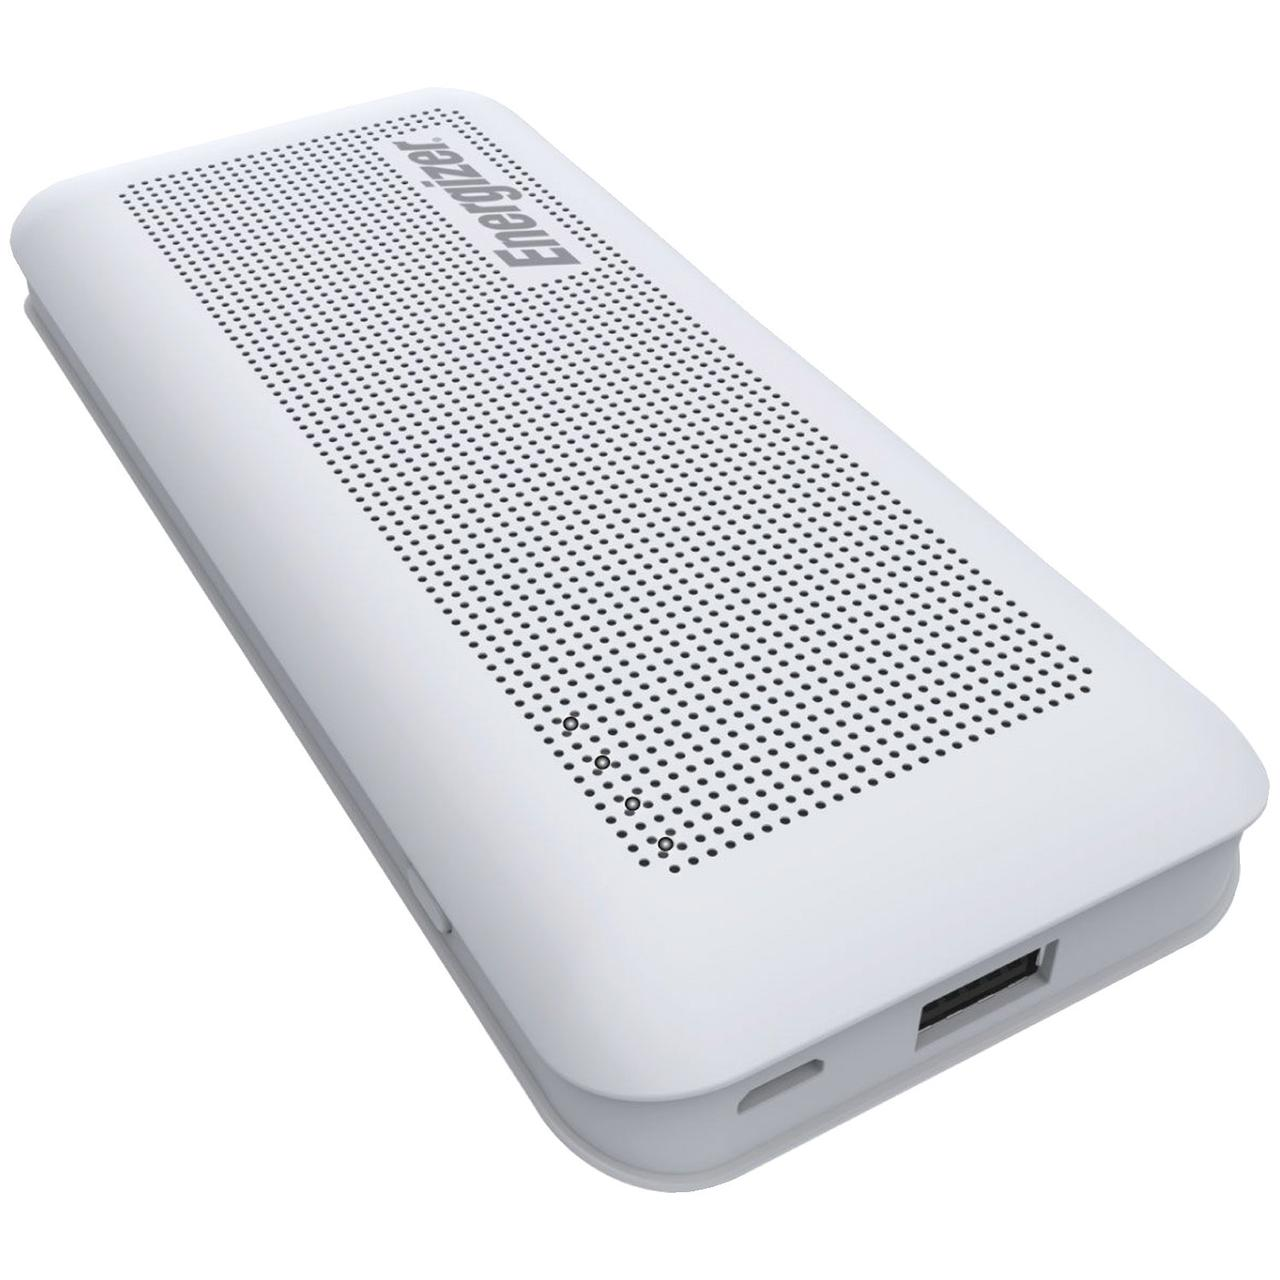 Energizer UE10005 Hightech Onepower-10,000mAh Power Bank by Energizer